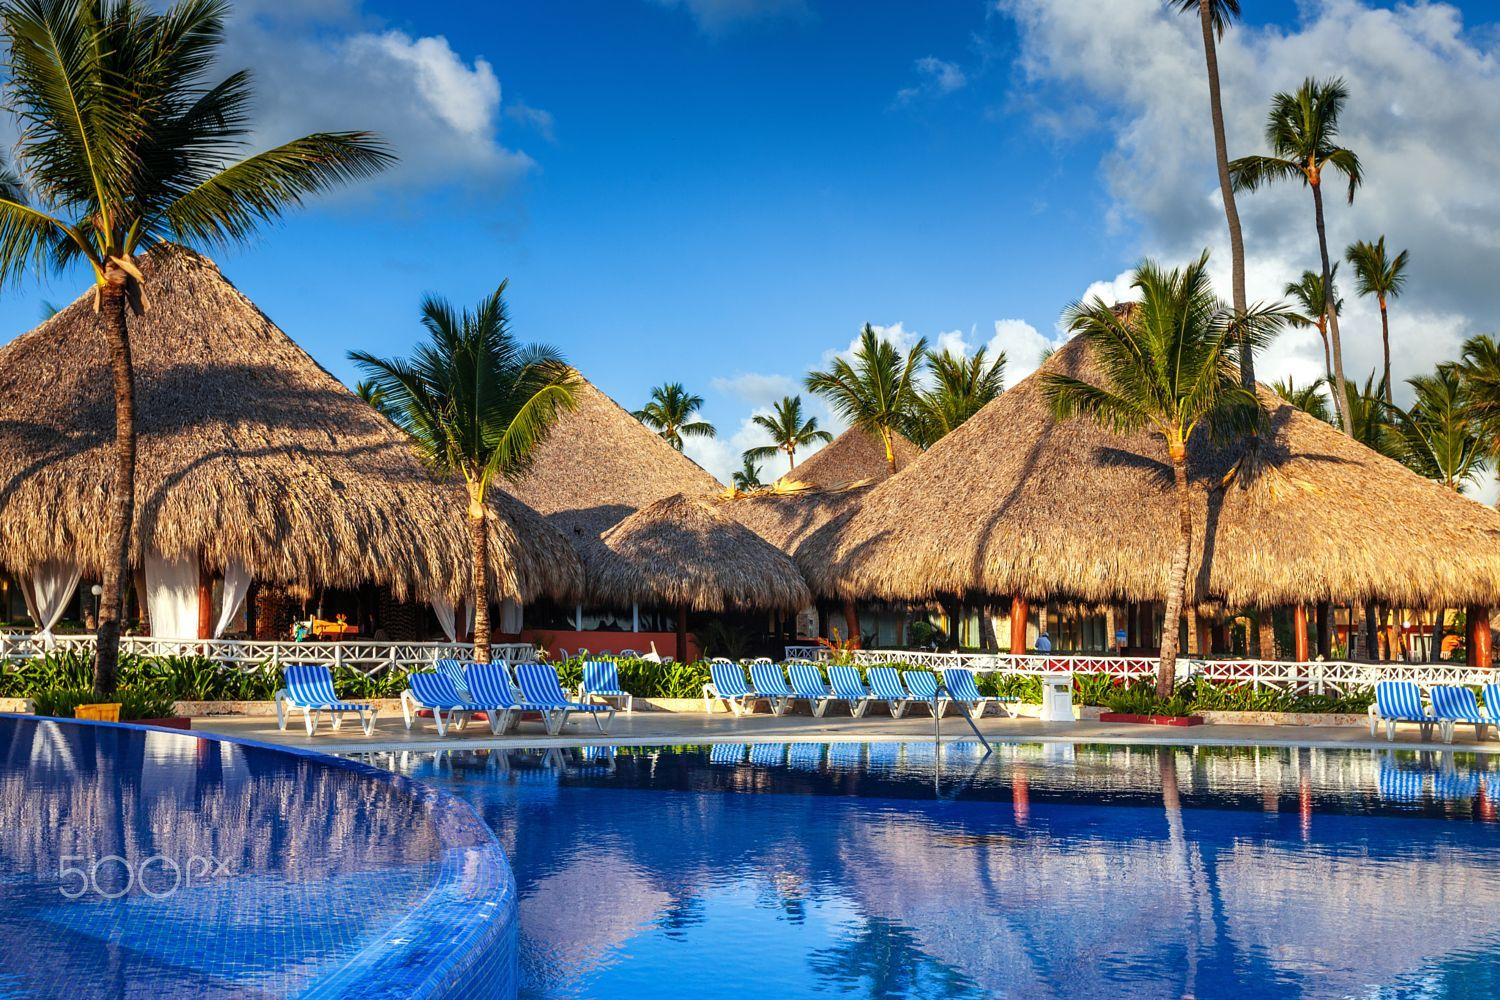 Tropical swimming pool in luxury resort, Punta Cana by